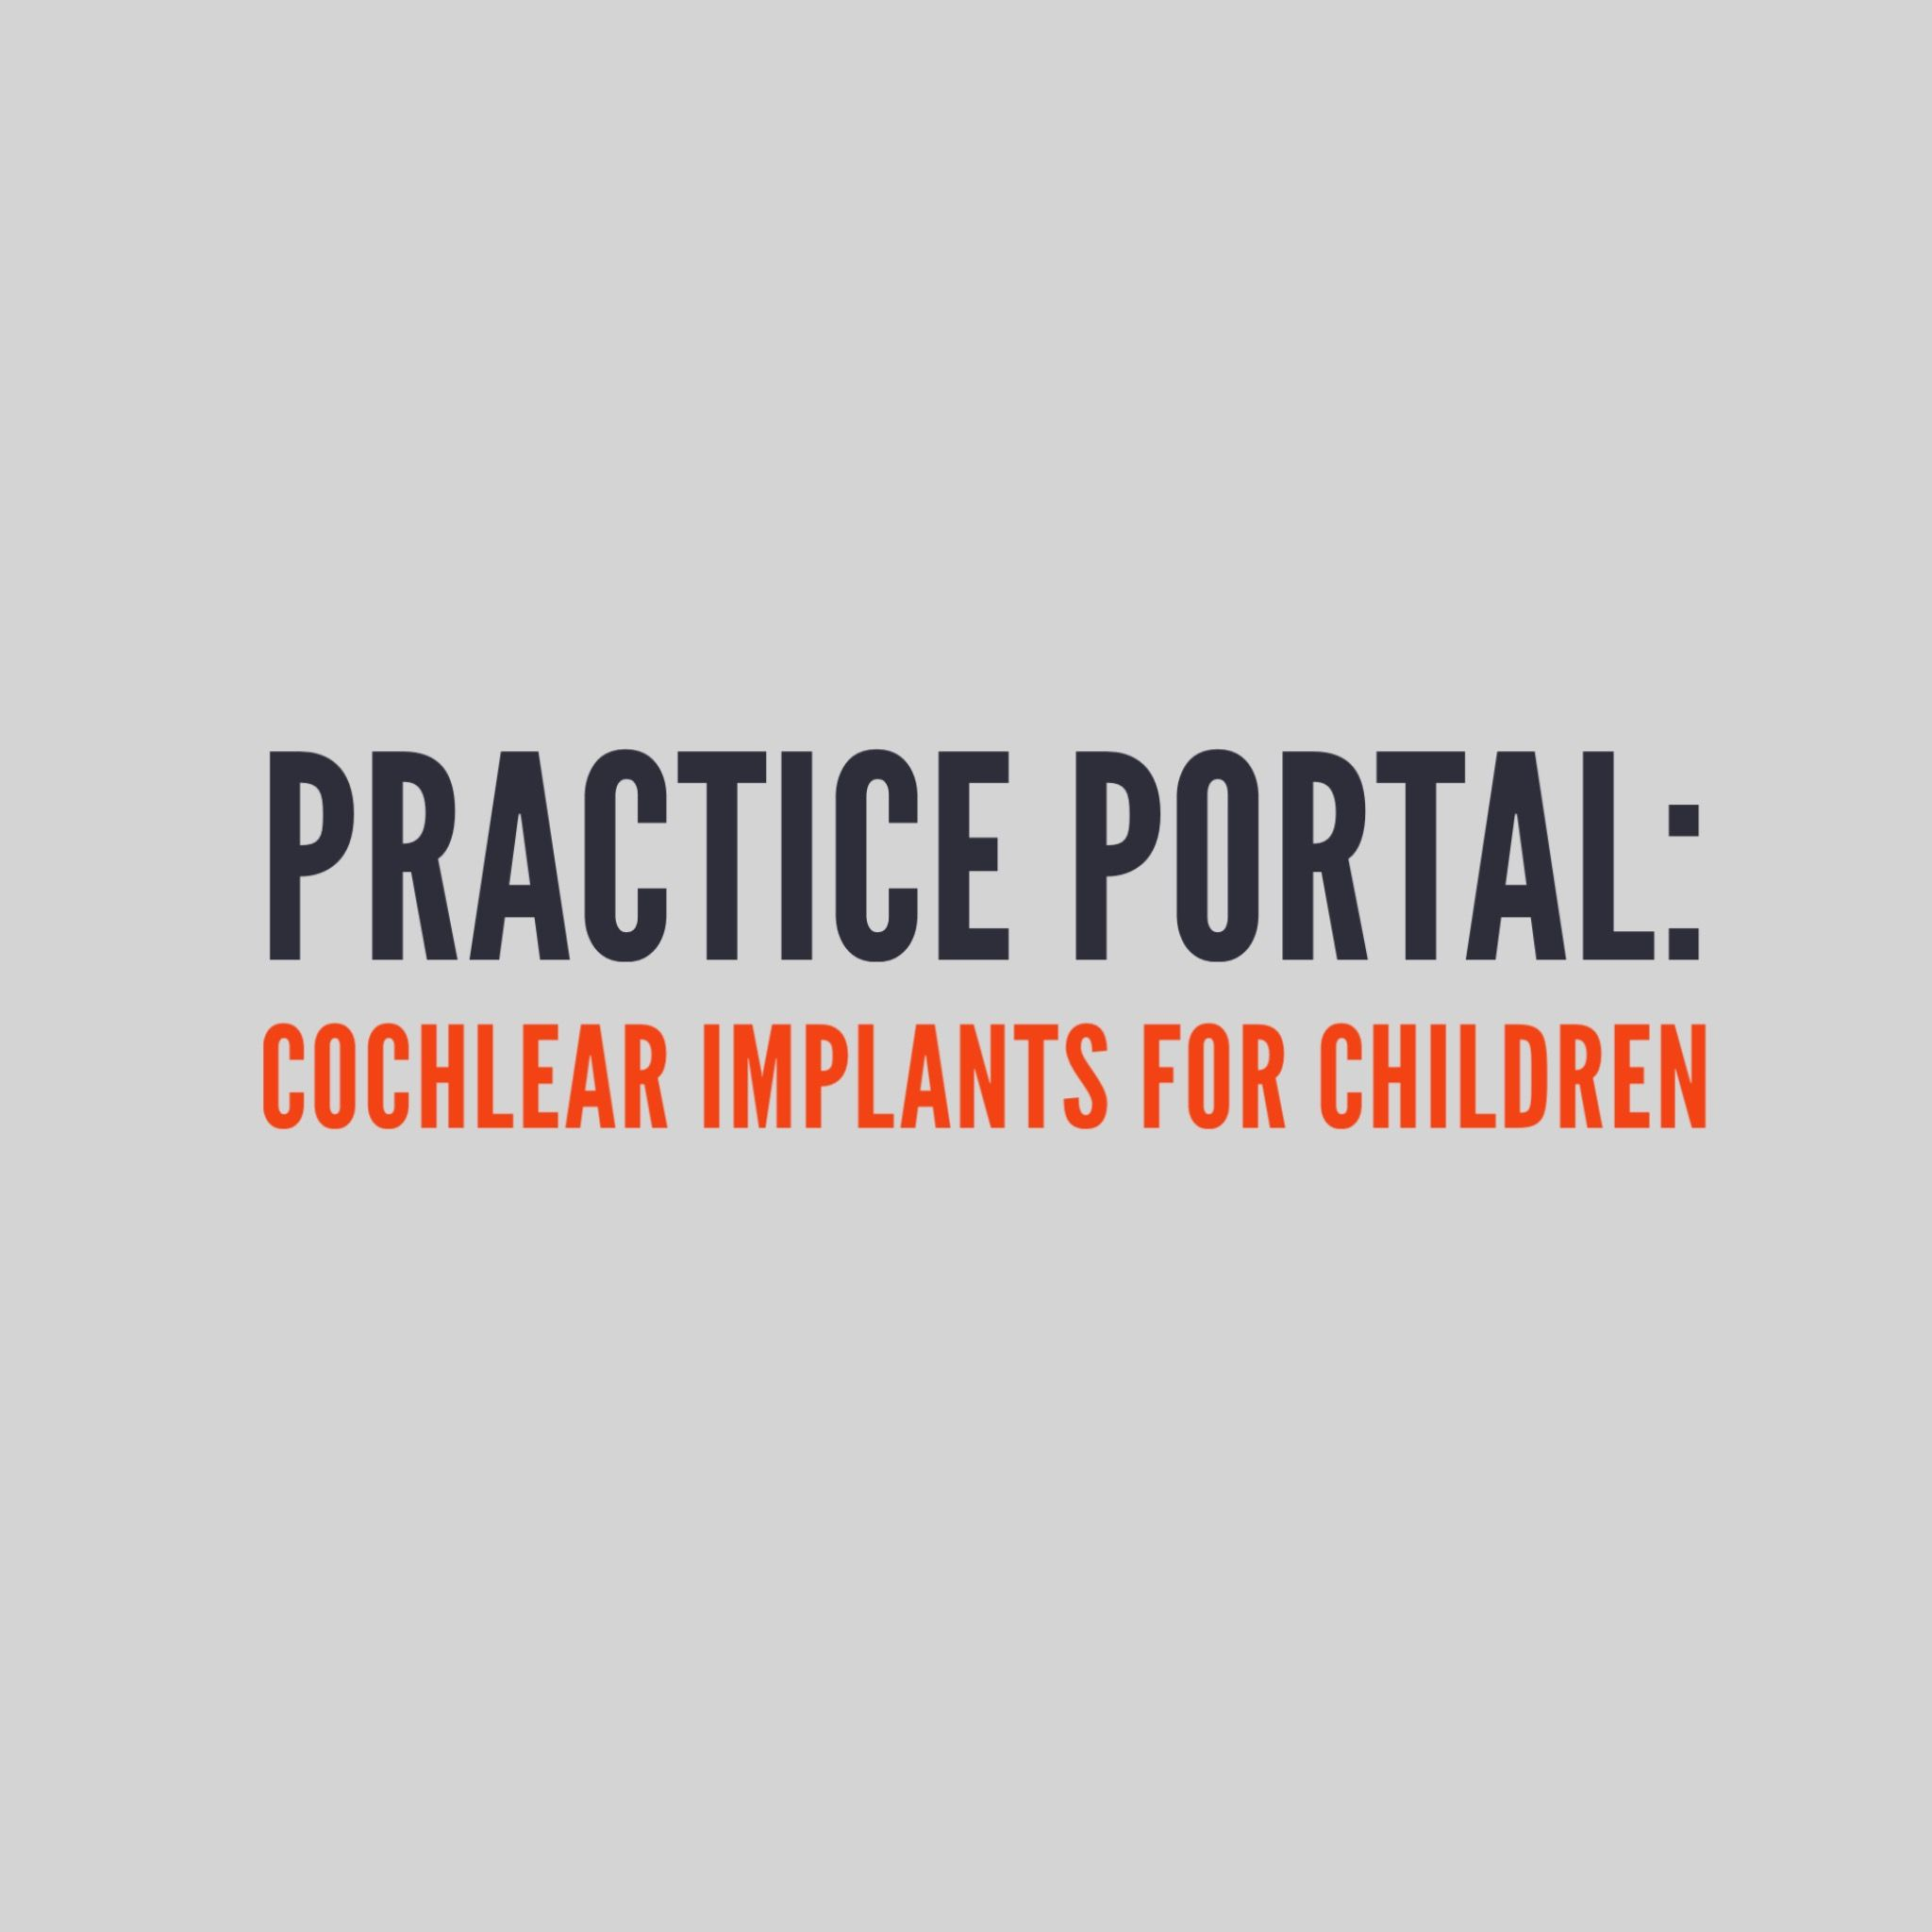 Cochlear Implants for Children: Curated and peer reviewed content on professional issues.